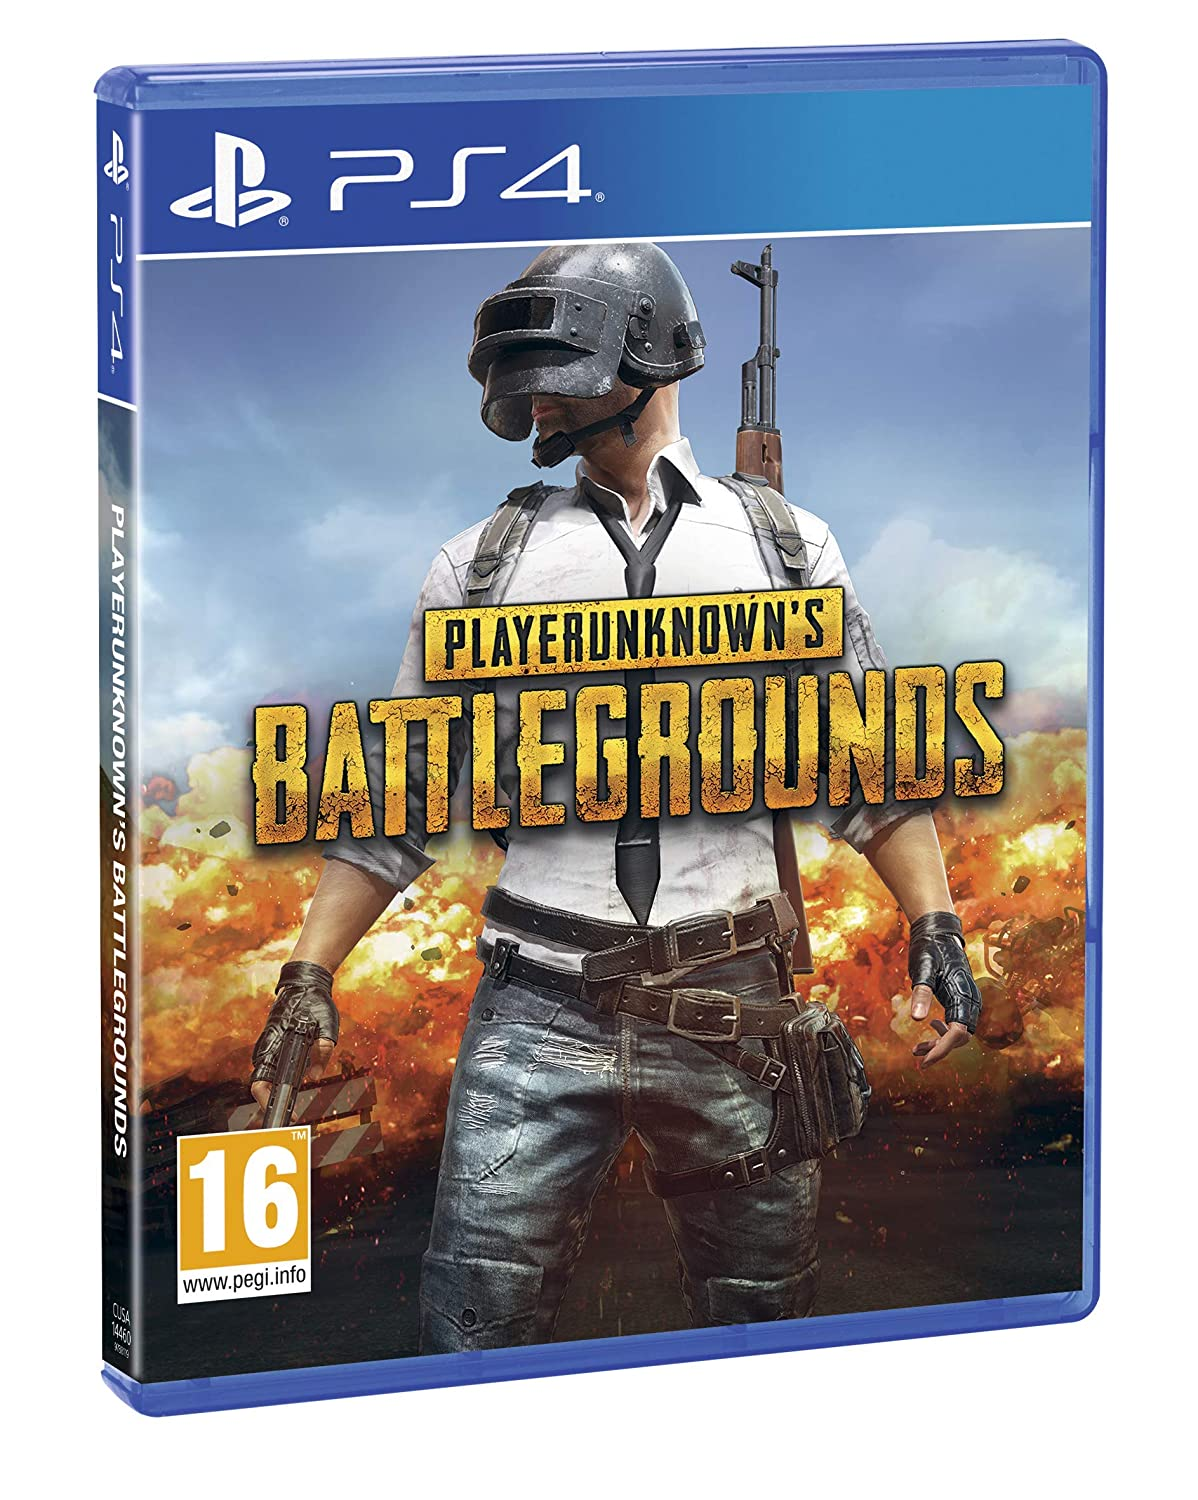 Buy Pubg Playerunknown S Battlegrounds Ps4 Playstation Plus Required Online At Low Prices In India Bluehole Inc Siee Video Games Amazon In